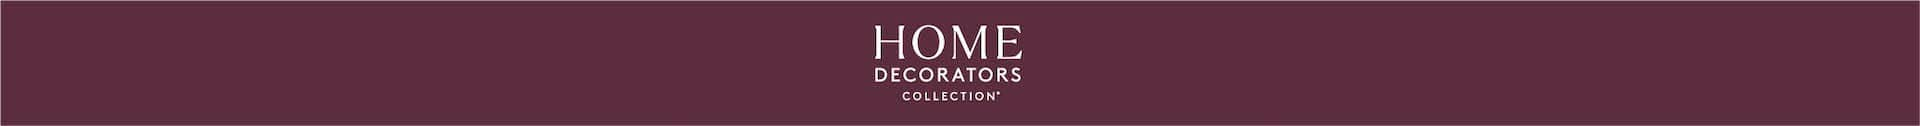 The Home Decorators Collection